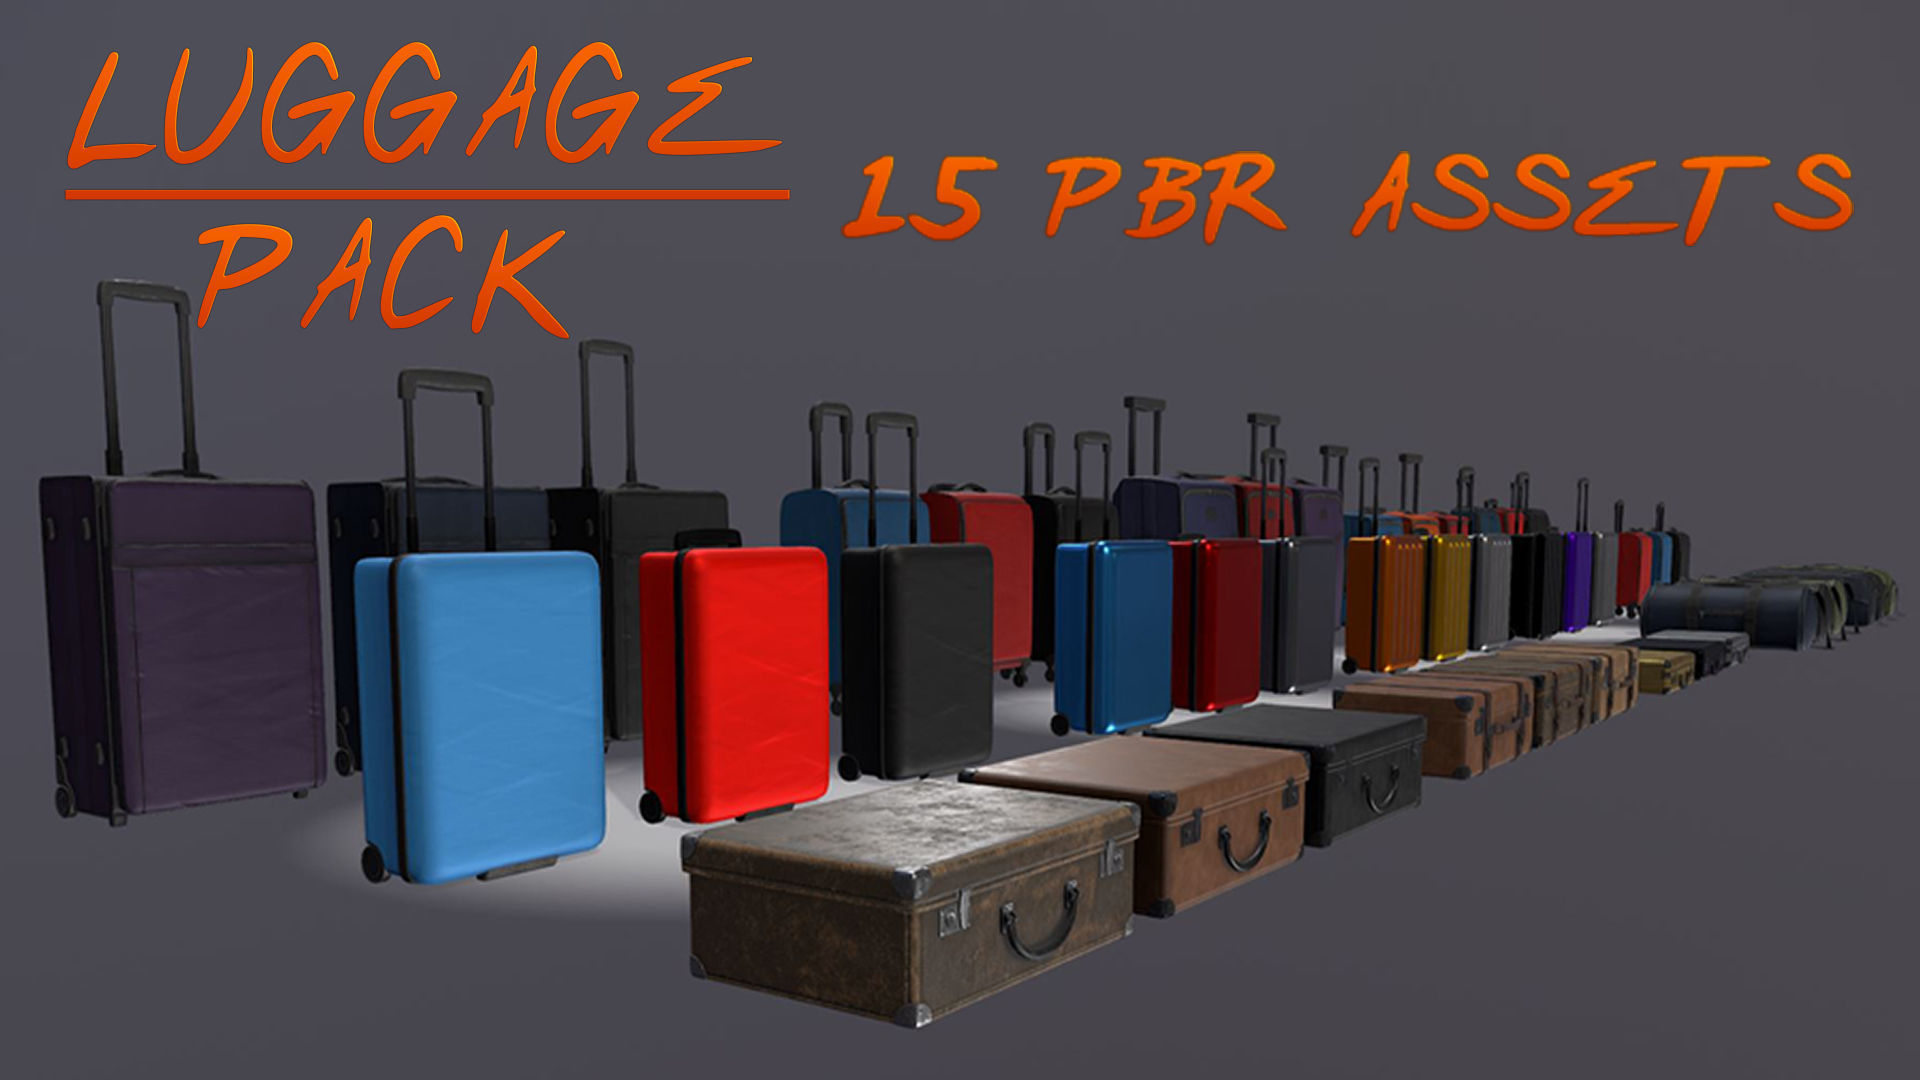 Luggage Pack - 15 PBR Assets